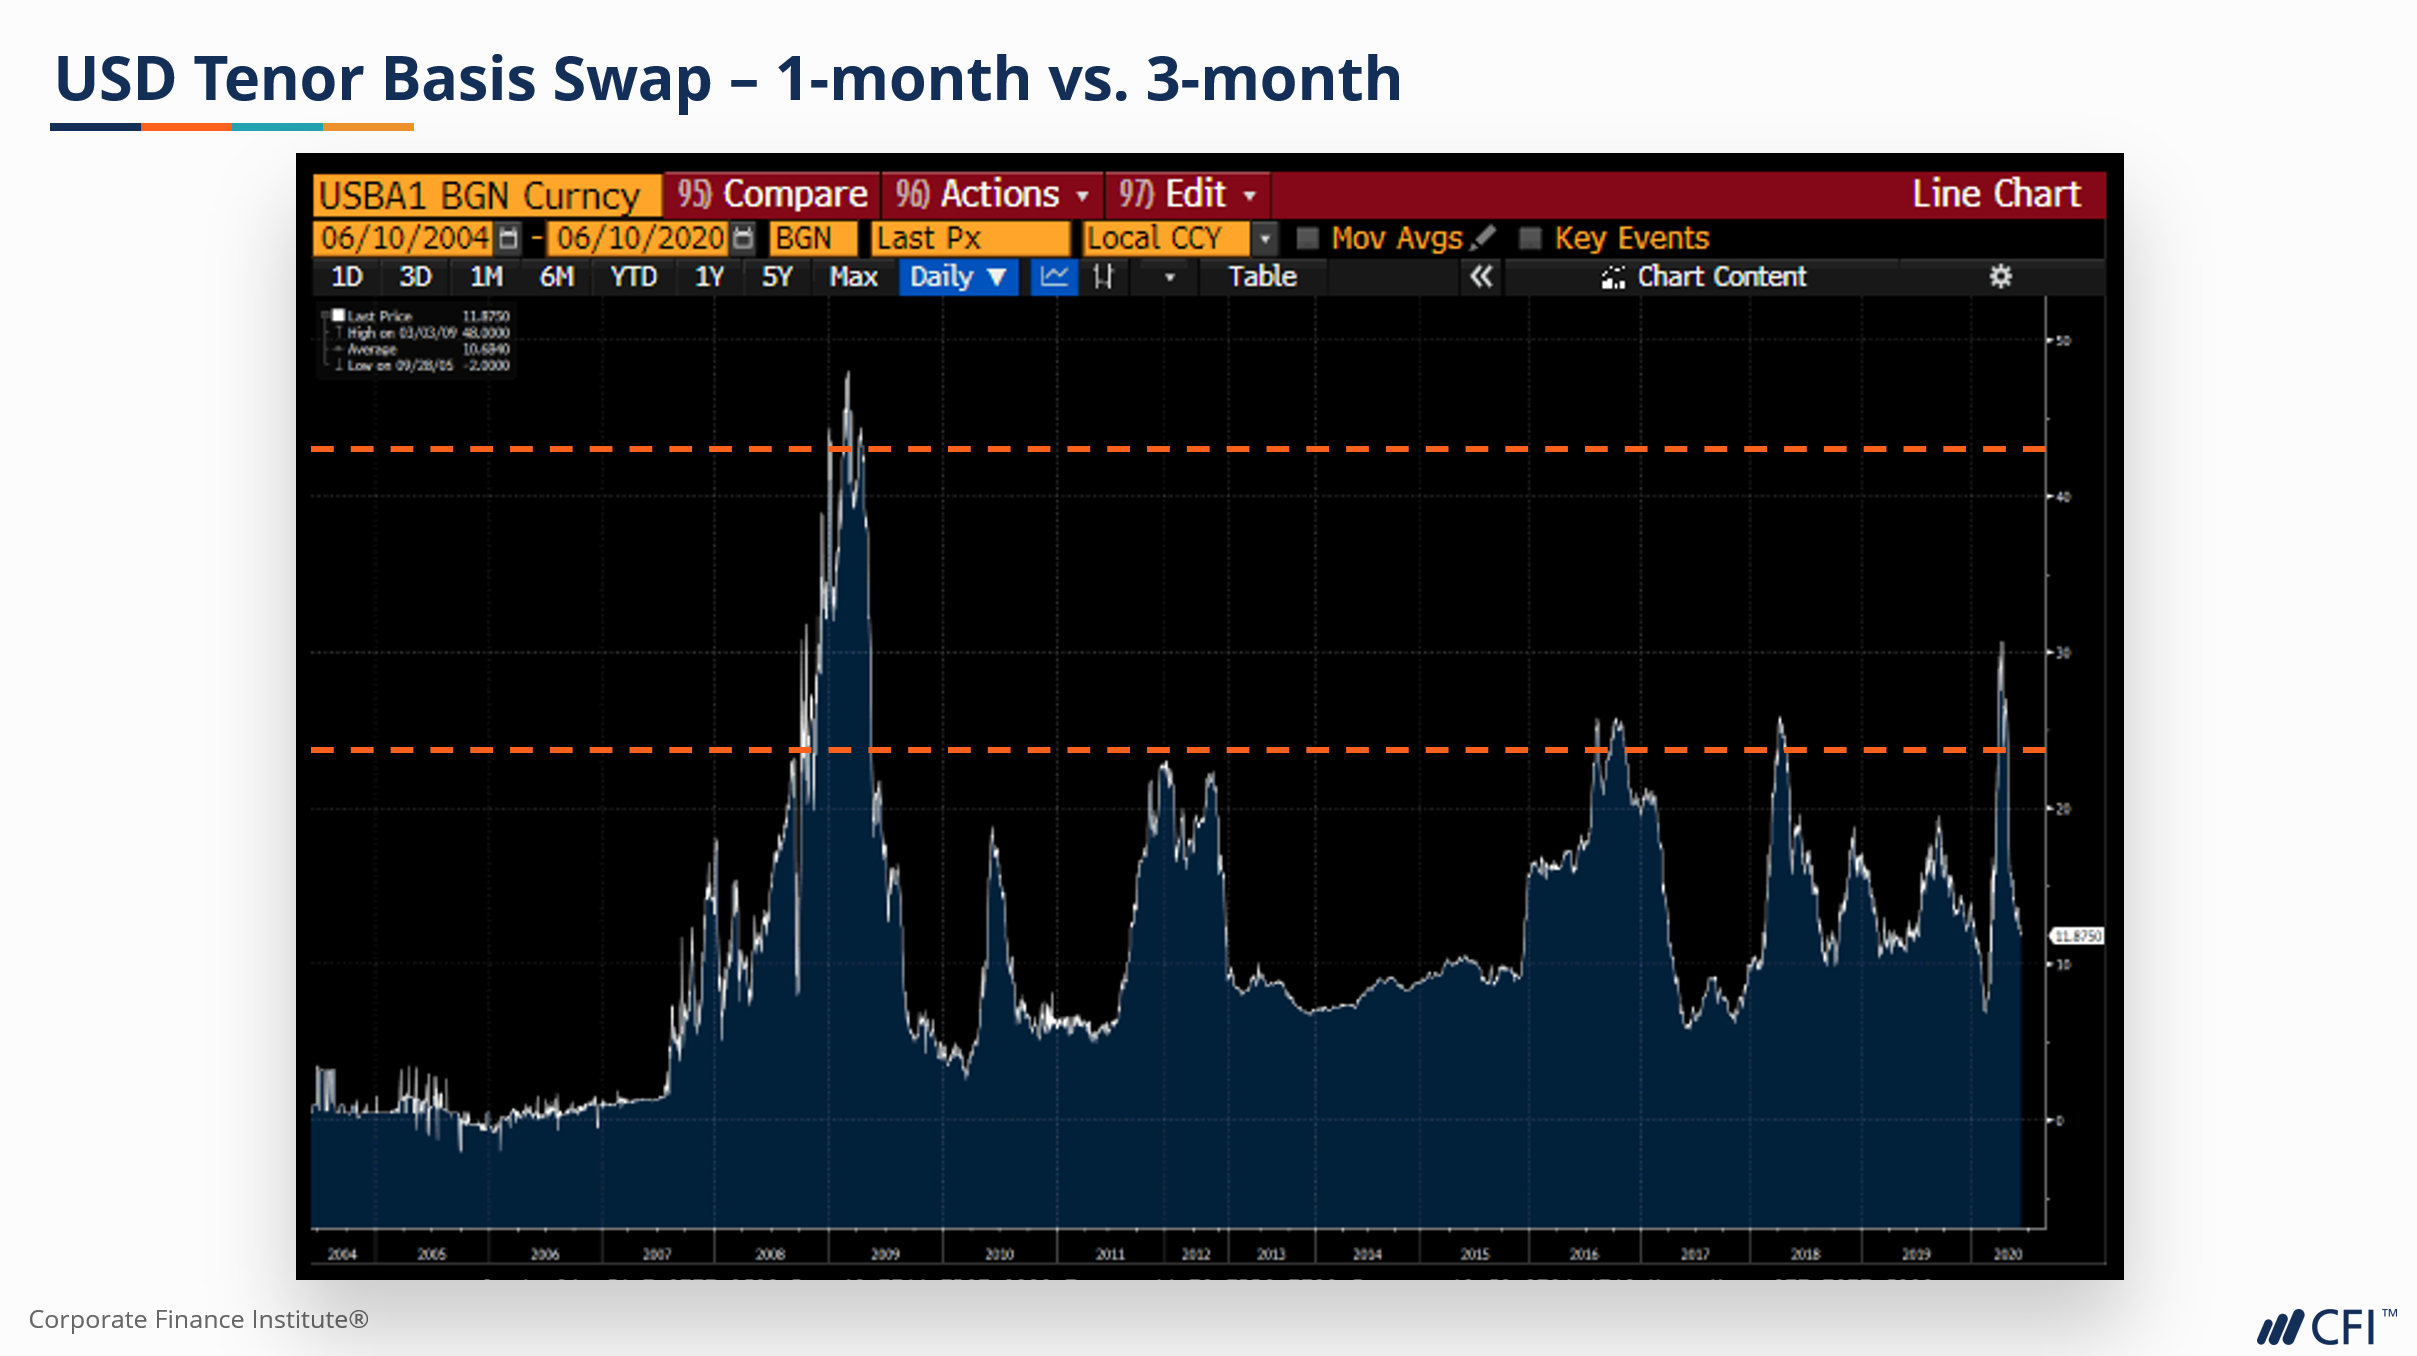 Bloomberg Tenor Basis Swap